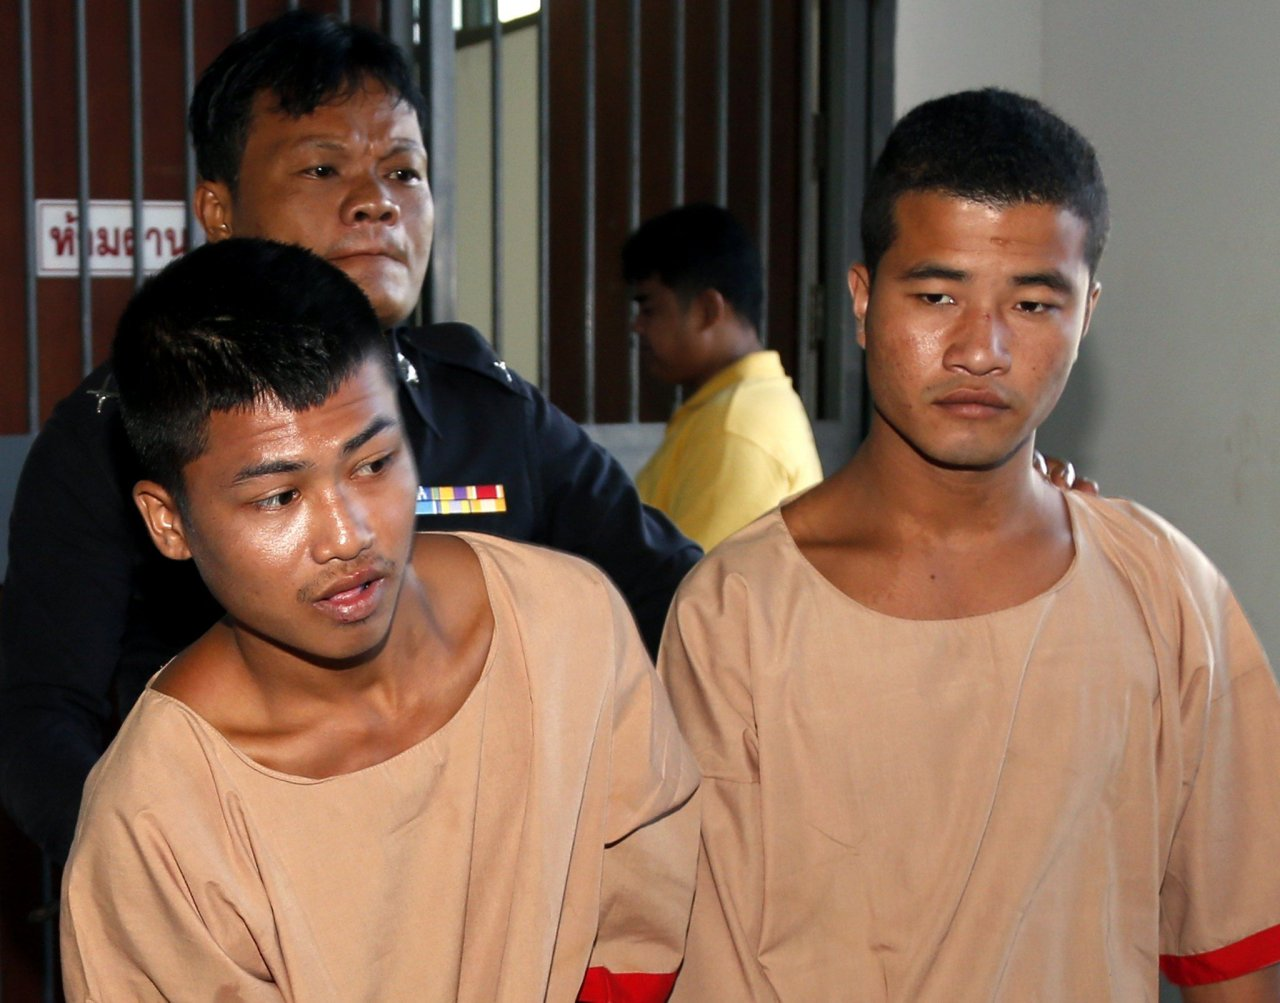 Myanmar men appeal death sentences for murders of Britons in Thailand